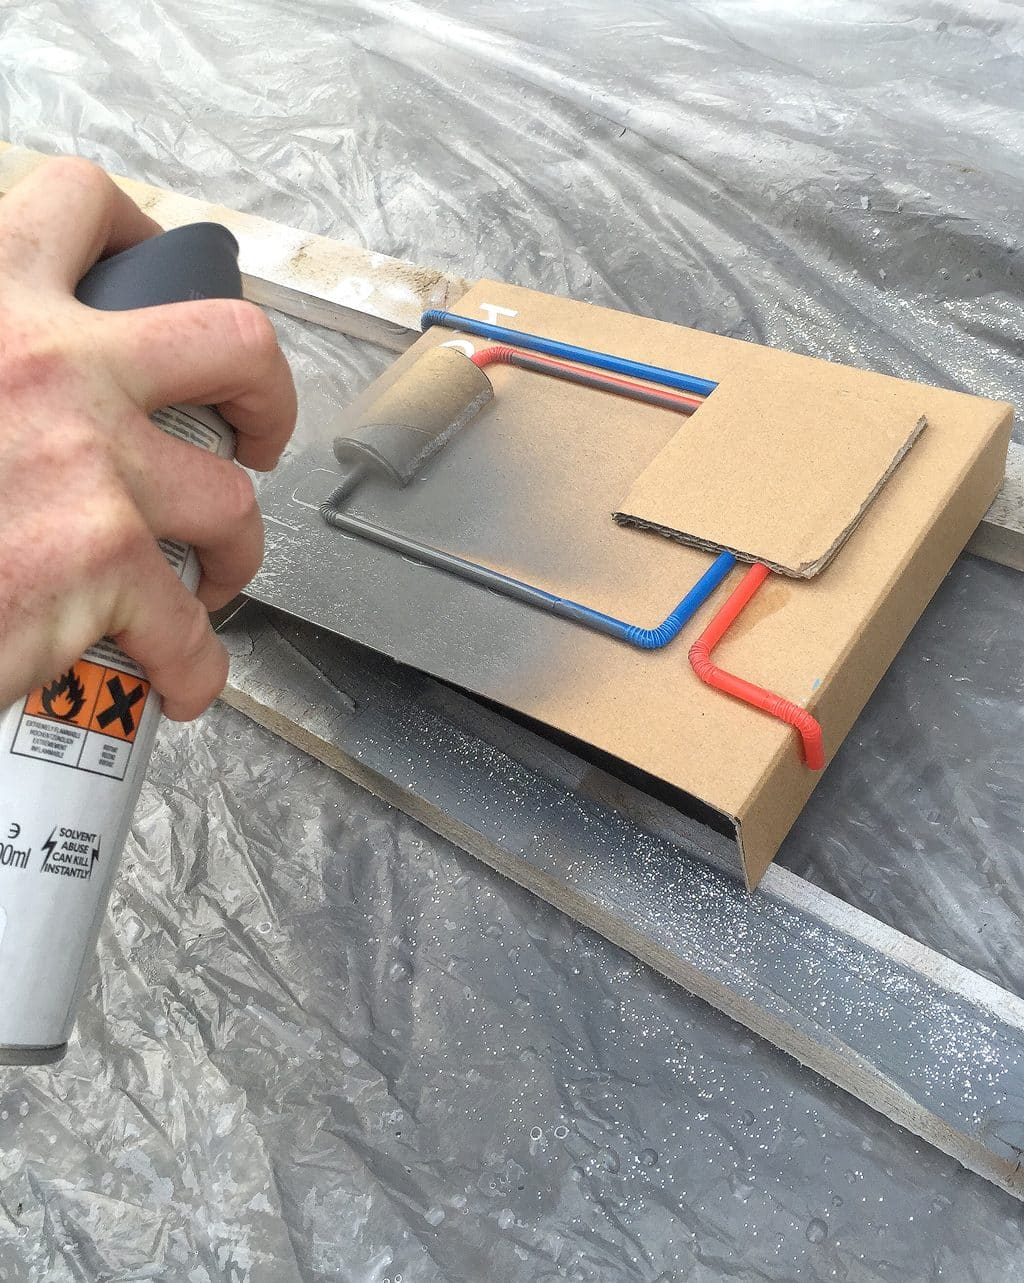 how-to-make-a-rocketpack-spraying-2